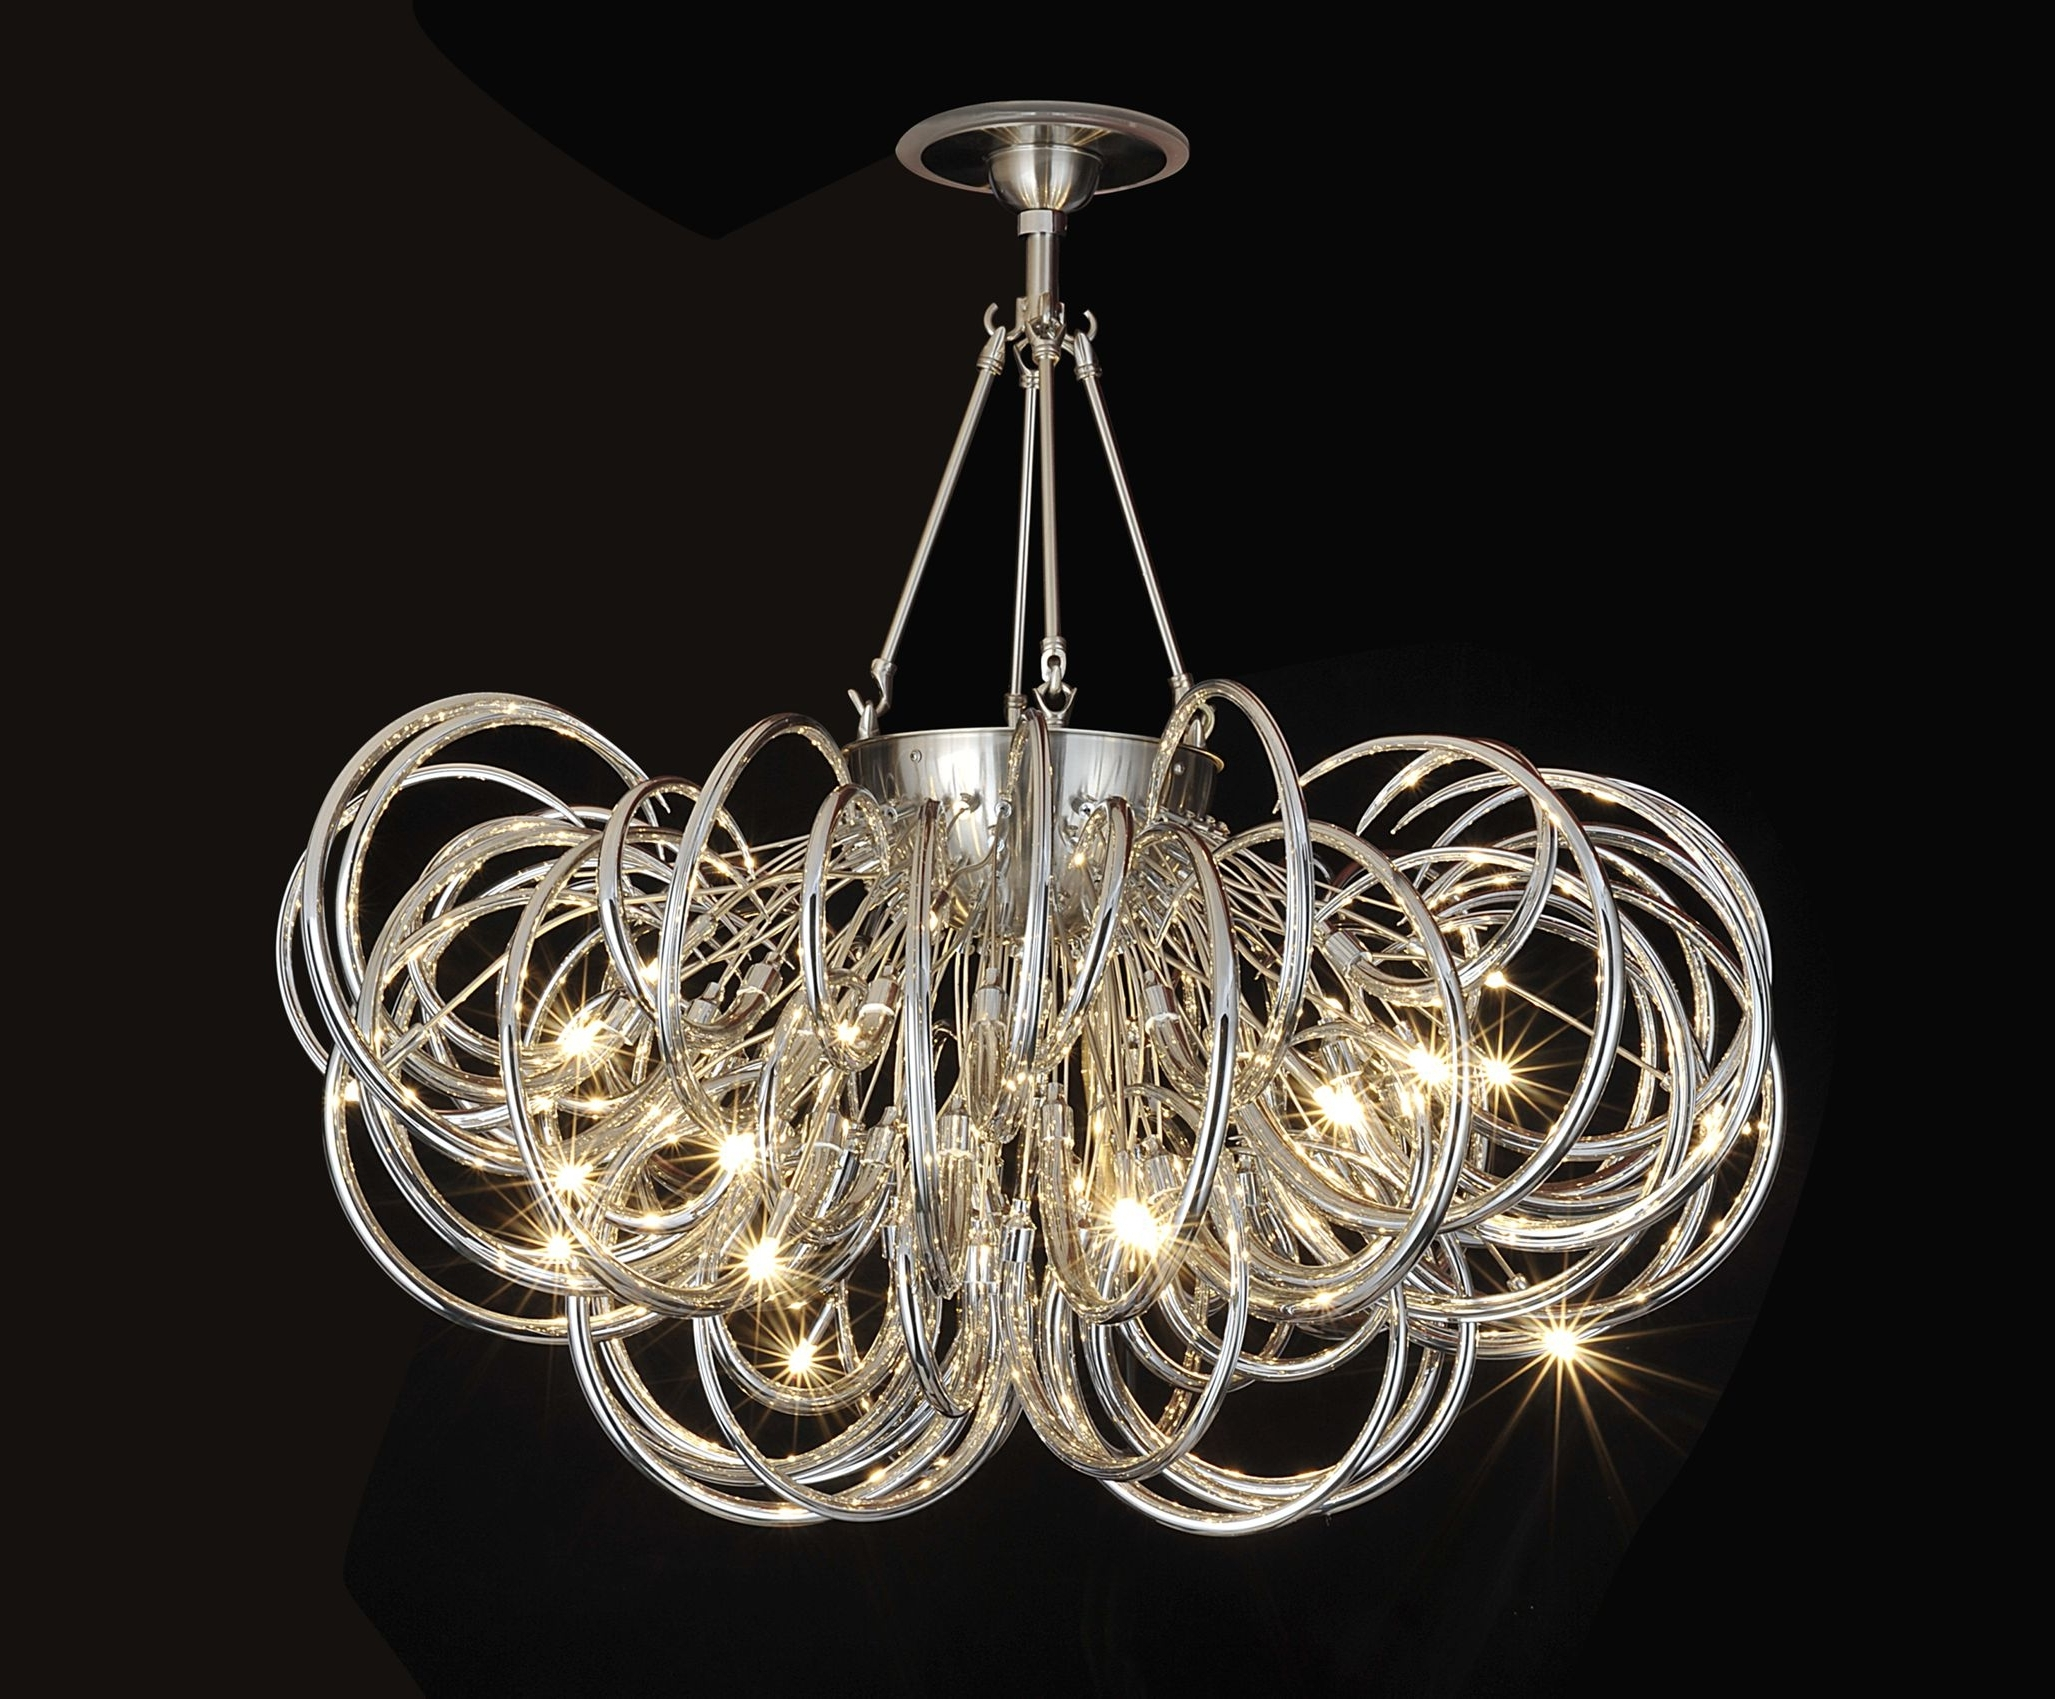 2019 Modern Glass Chandeliers Intended For Amazing Fabulous Modern Glass Chandelier Contemporary Glass (View 10 of 20)